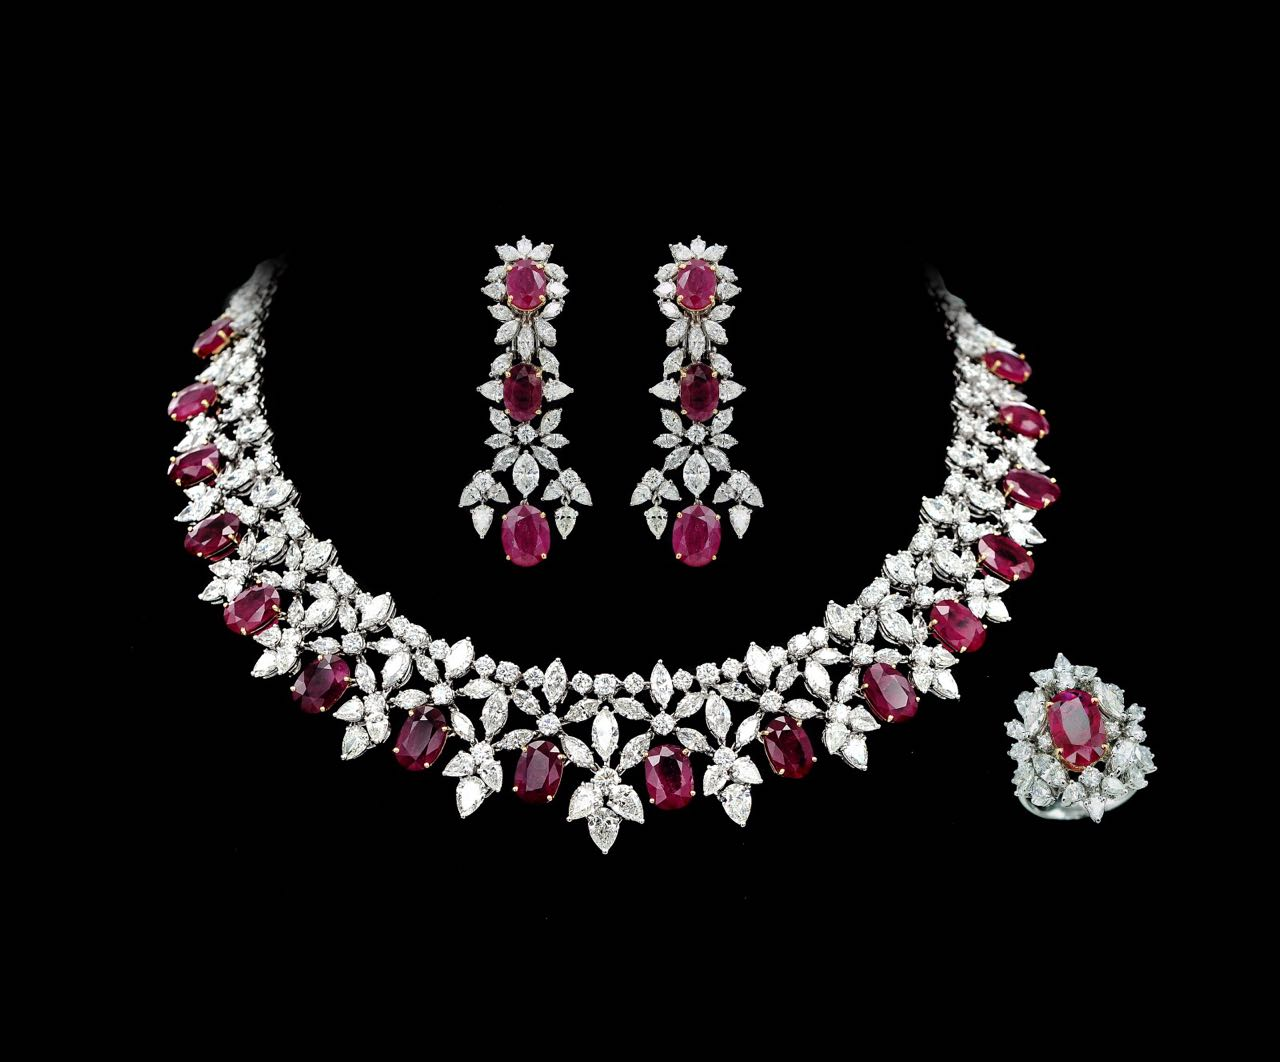 Diamond and ruby earring, necklace and ring set